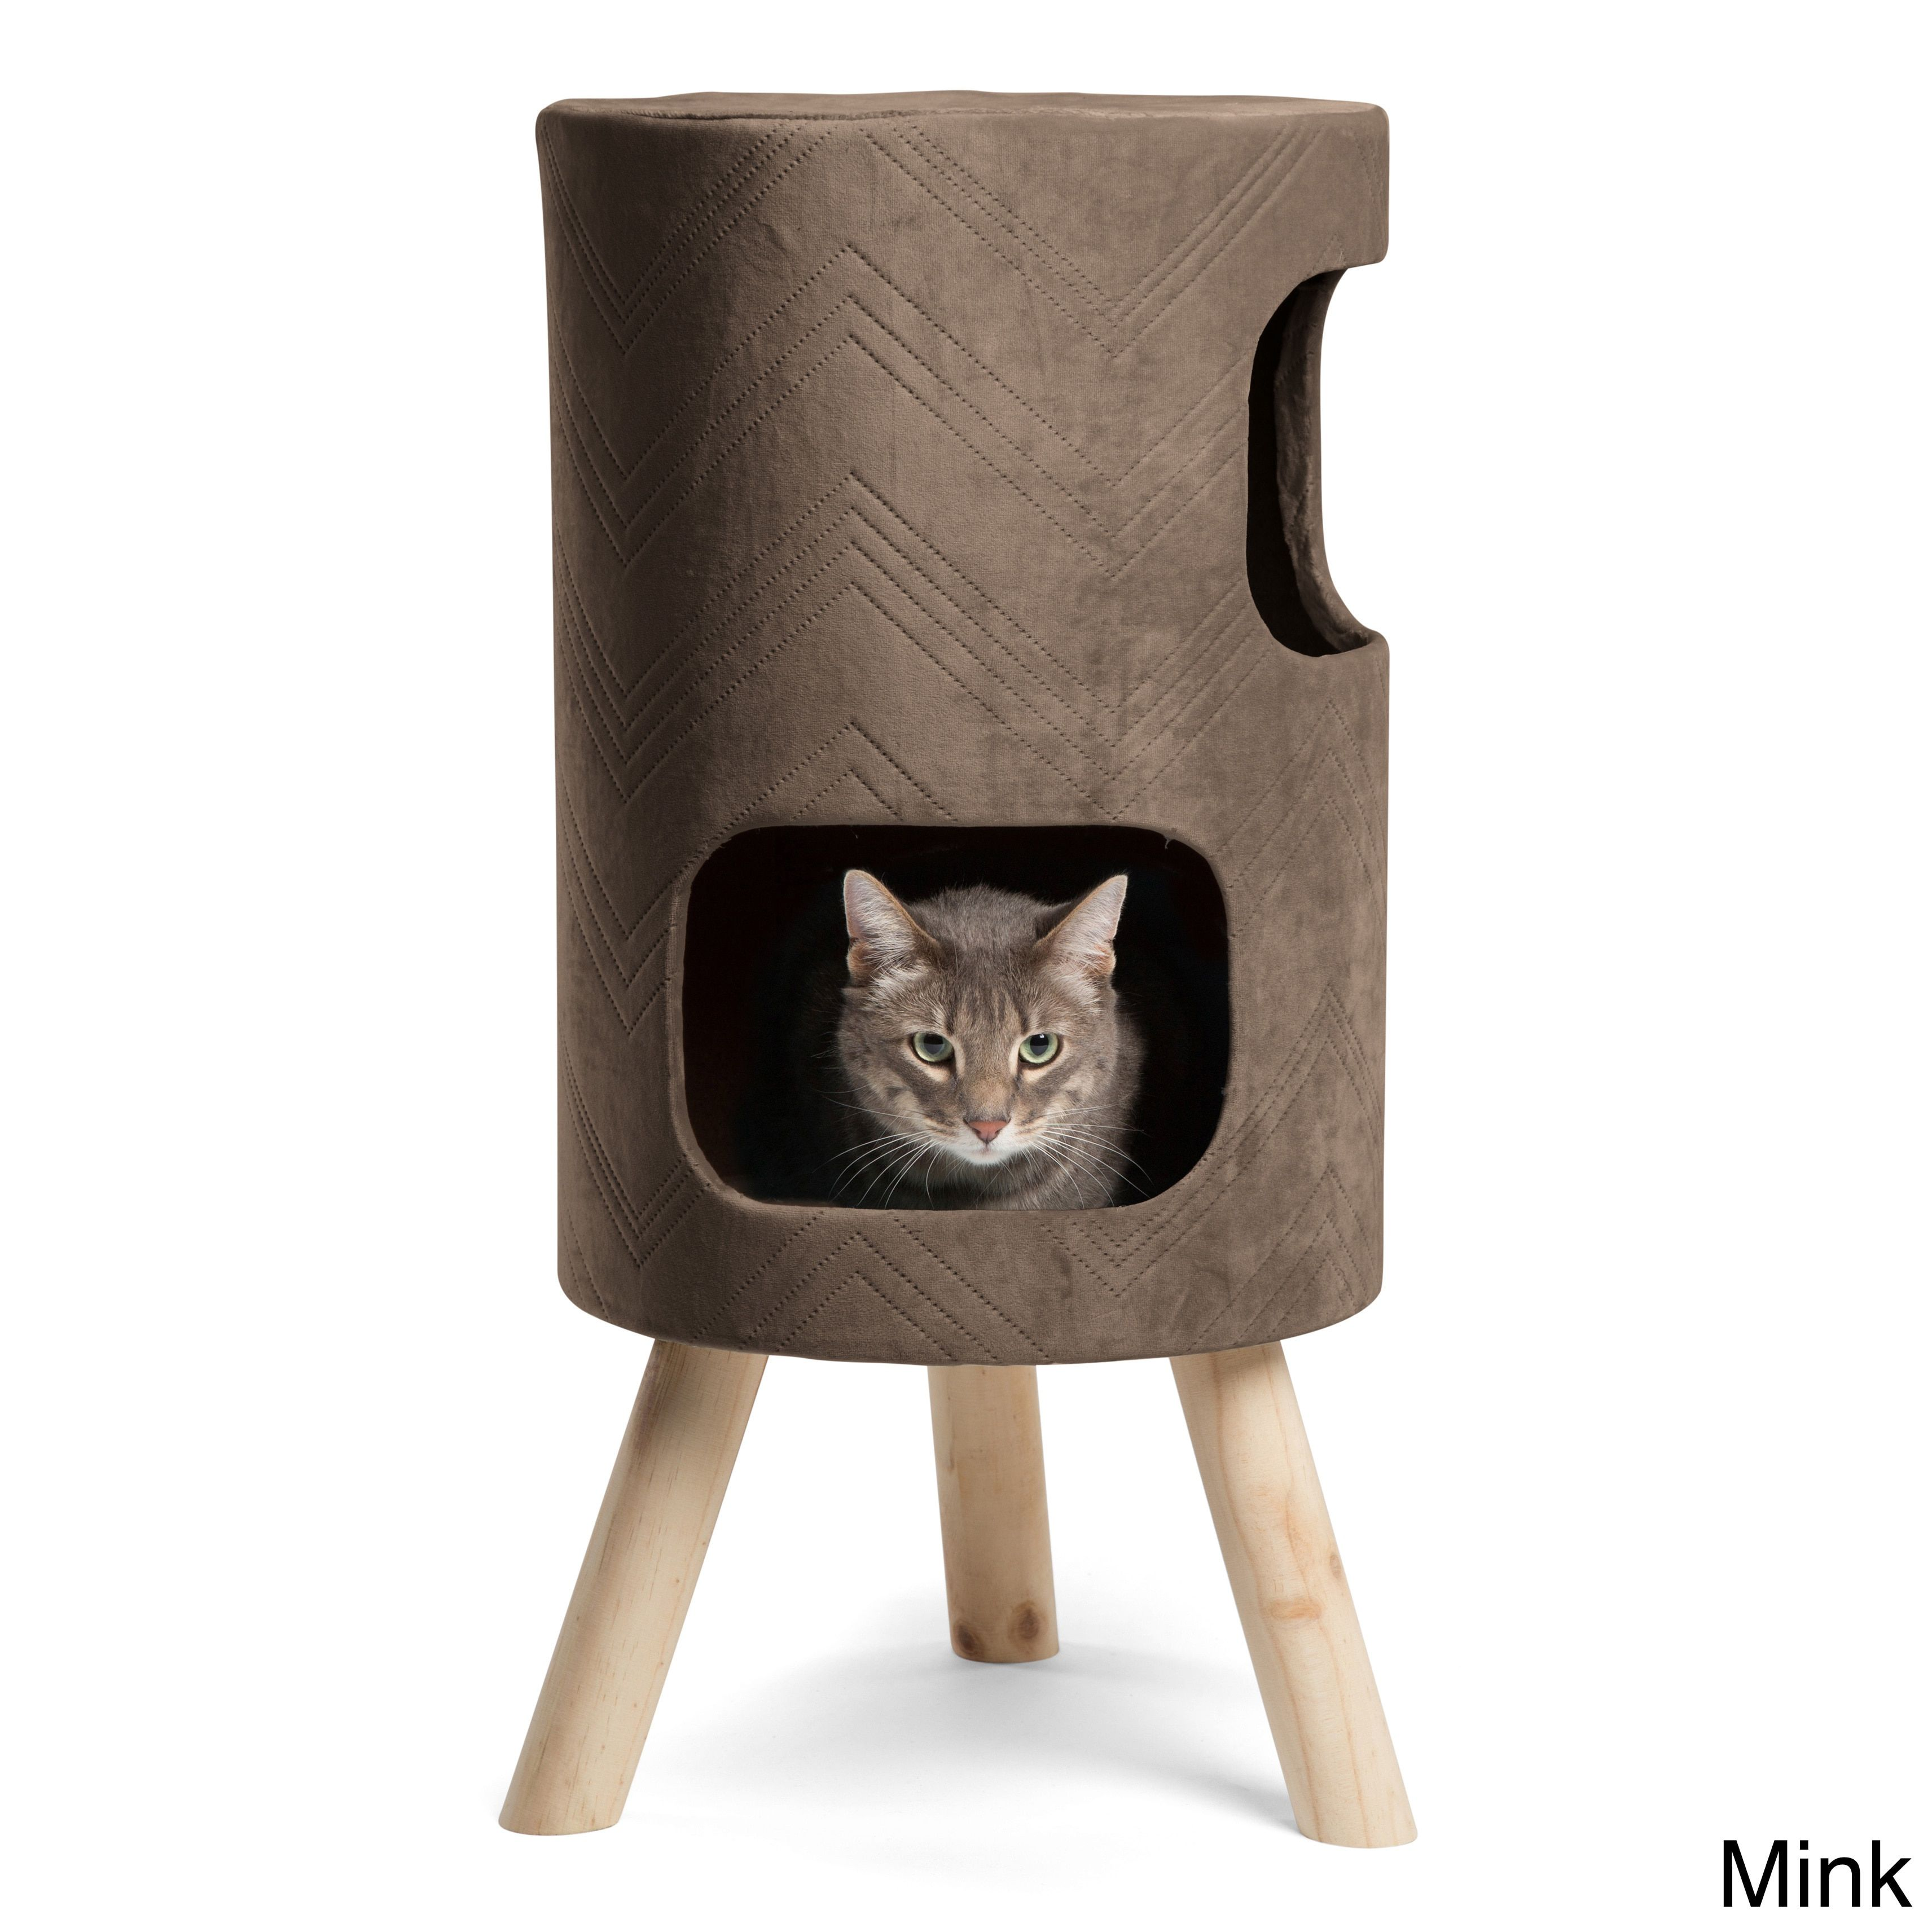 Best Friends By Sheri Modern Kitty Handcrafted Satellite Cat Tower